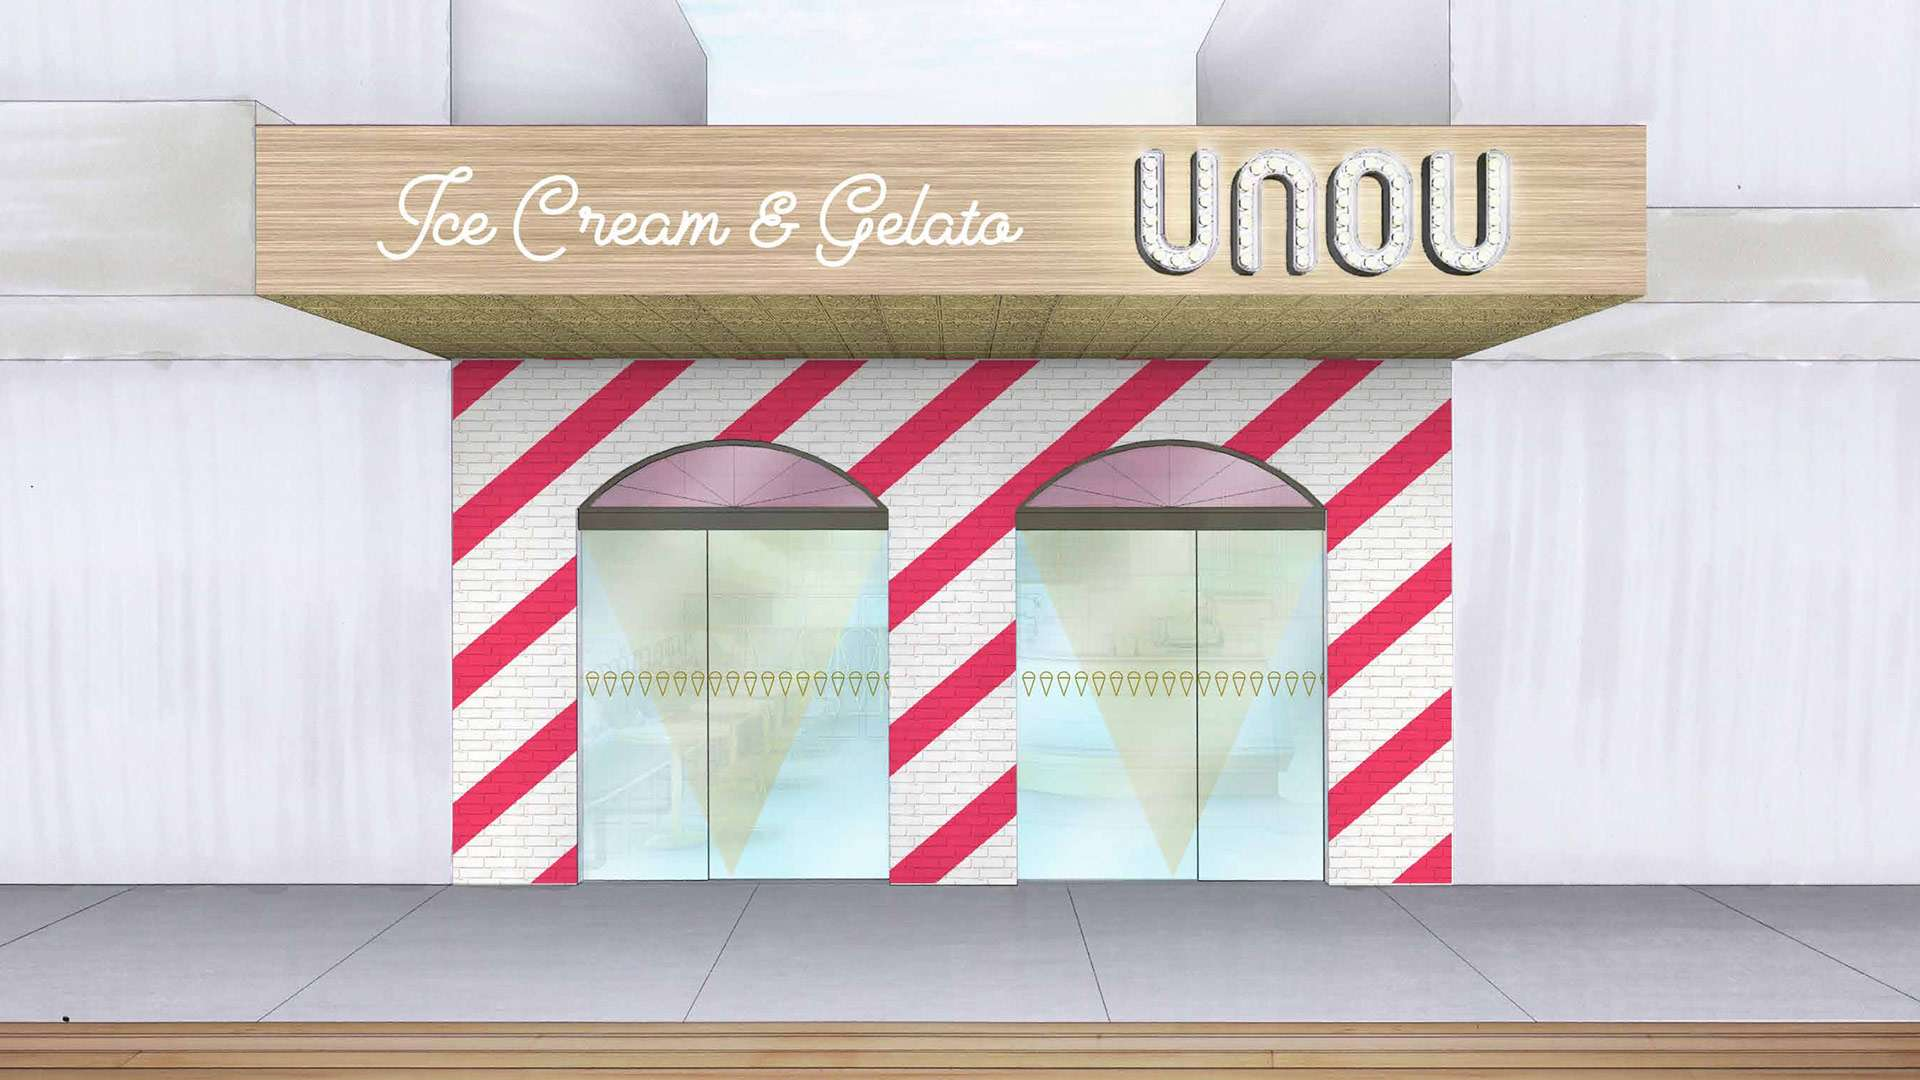 WORKING PROGRESS - UNOU Ice Cream & Gelato